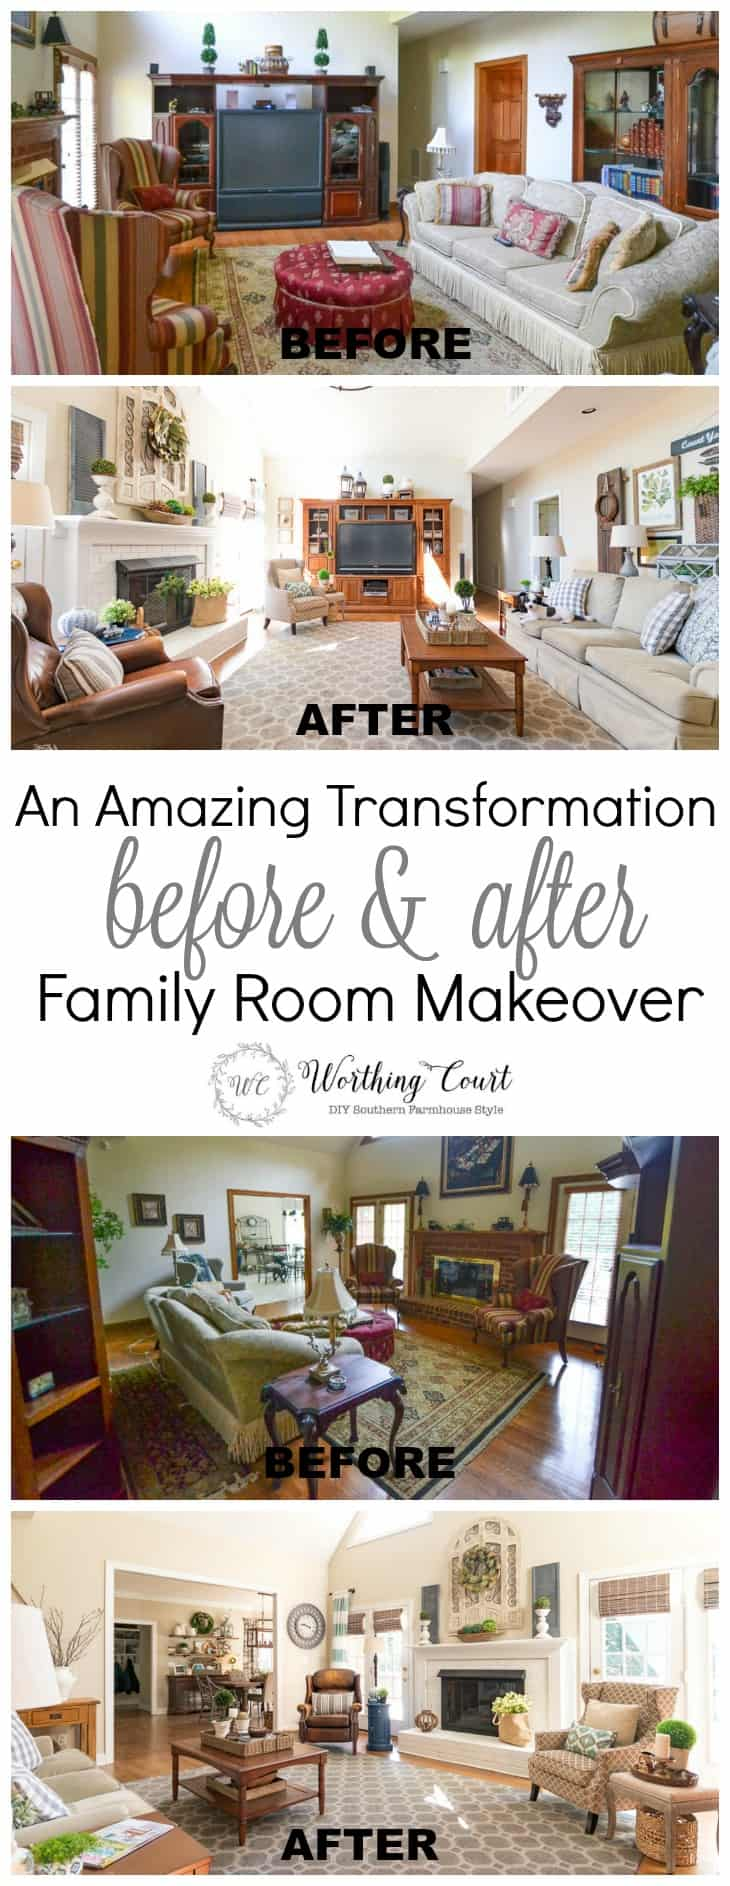 Amazing before and after family room makeover taken from dark and dated to bright and